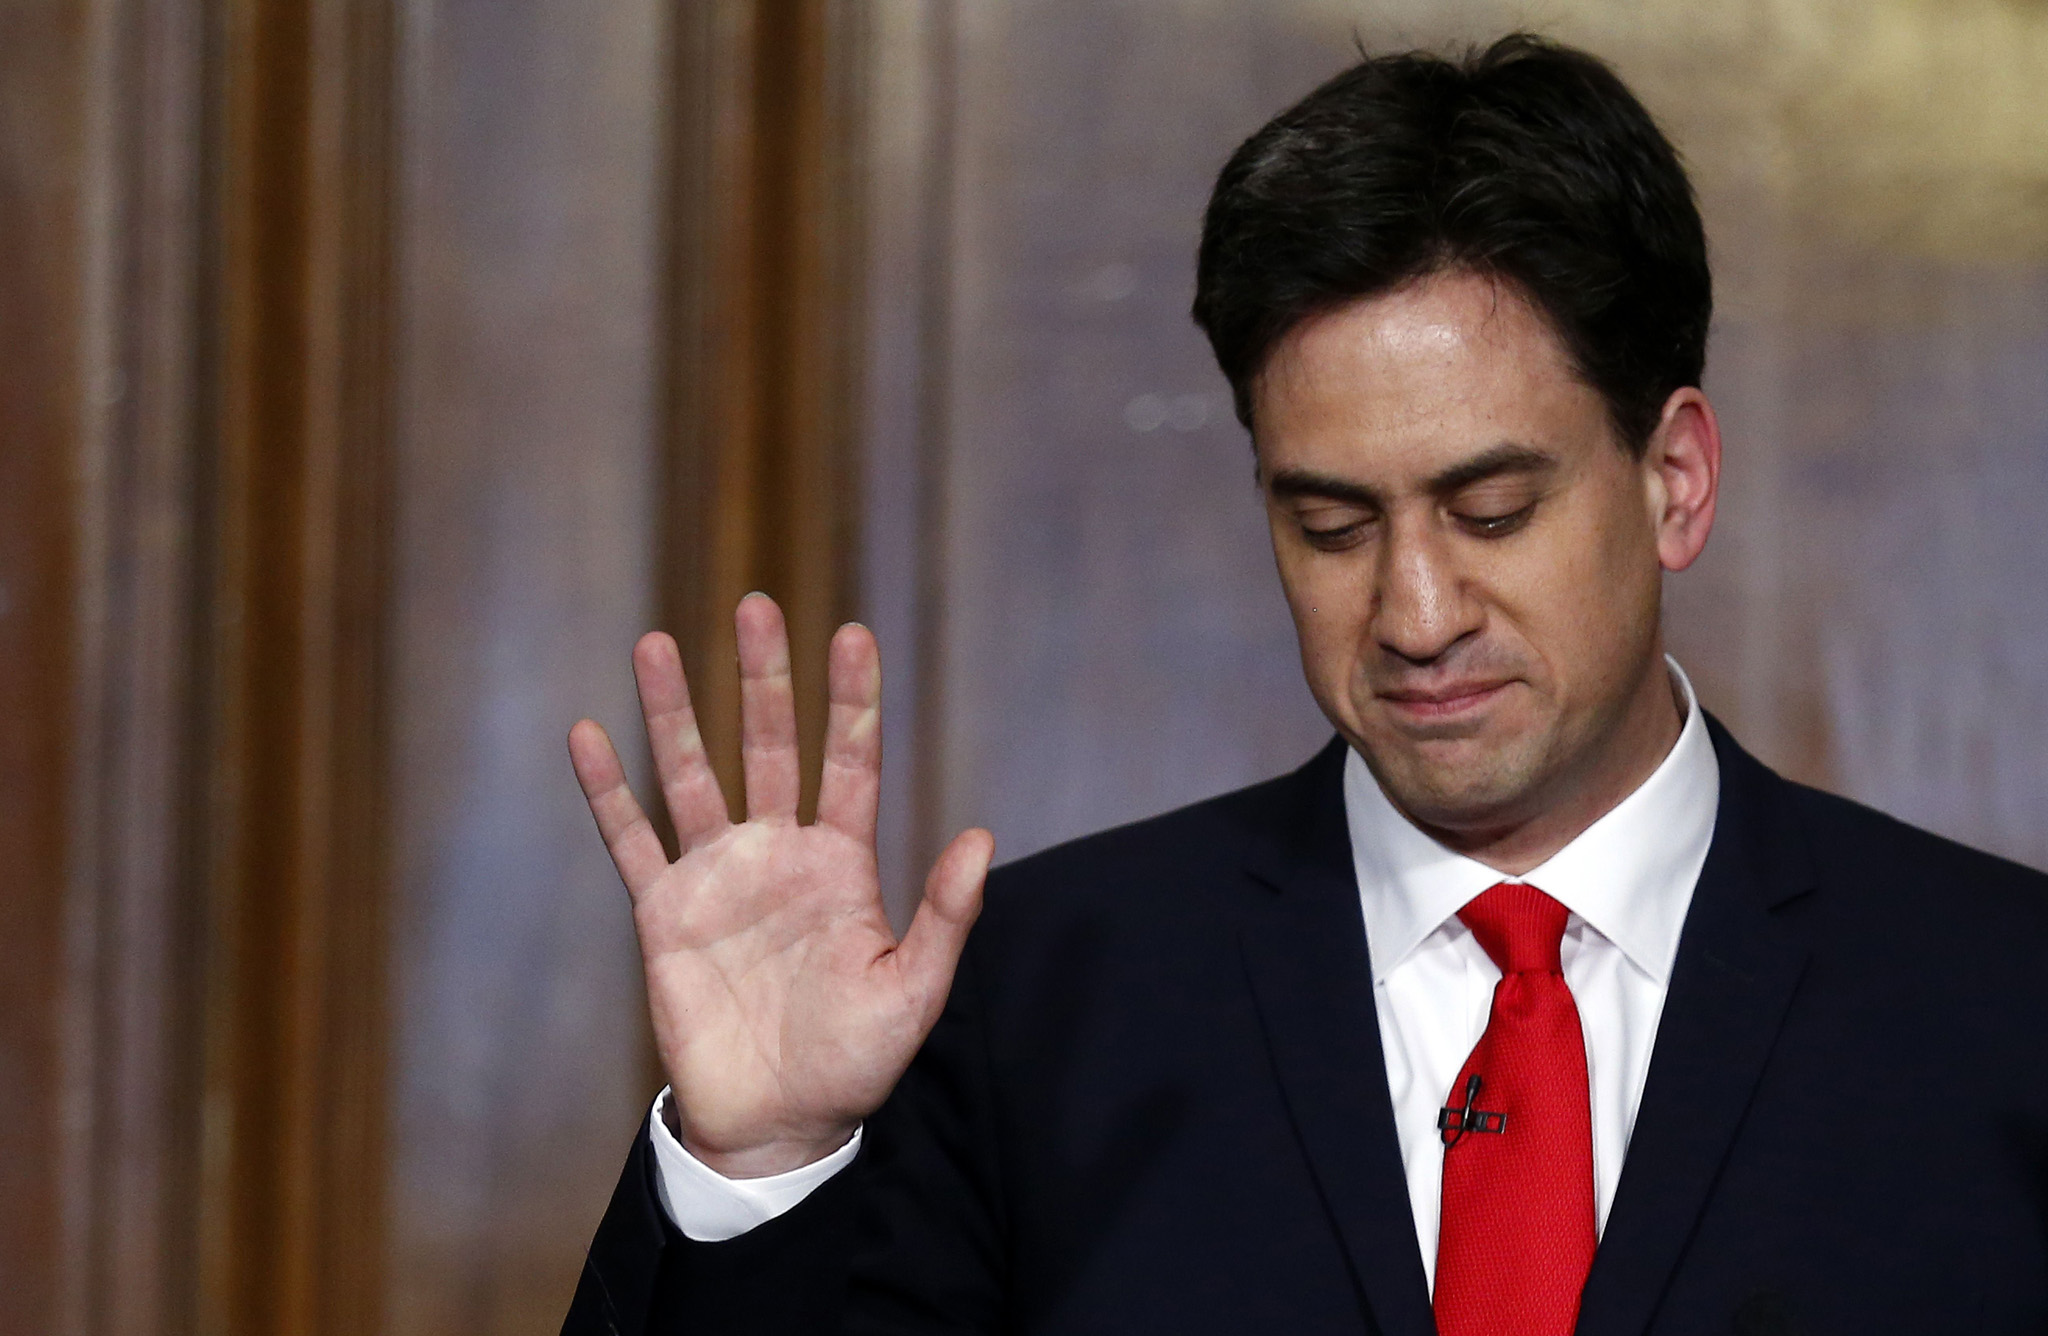 Opposition Labour Party leader Ed Miliband speaks during a press conference at which he announced his resignation as head of the party.